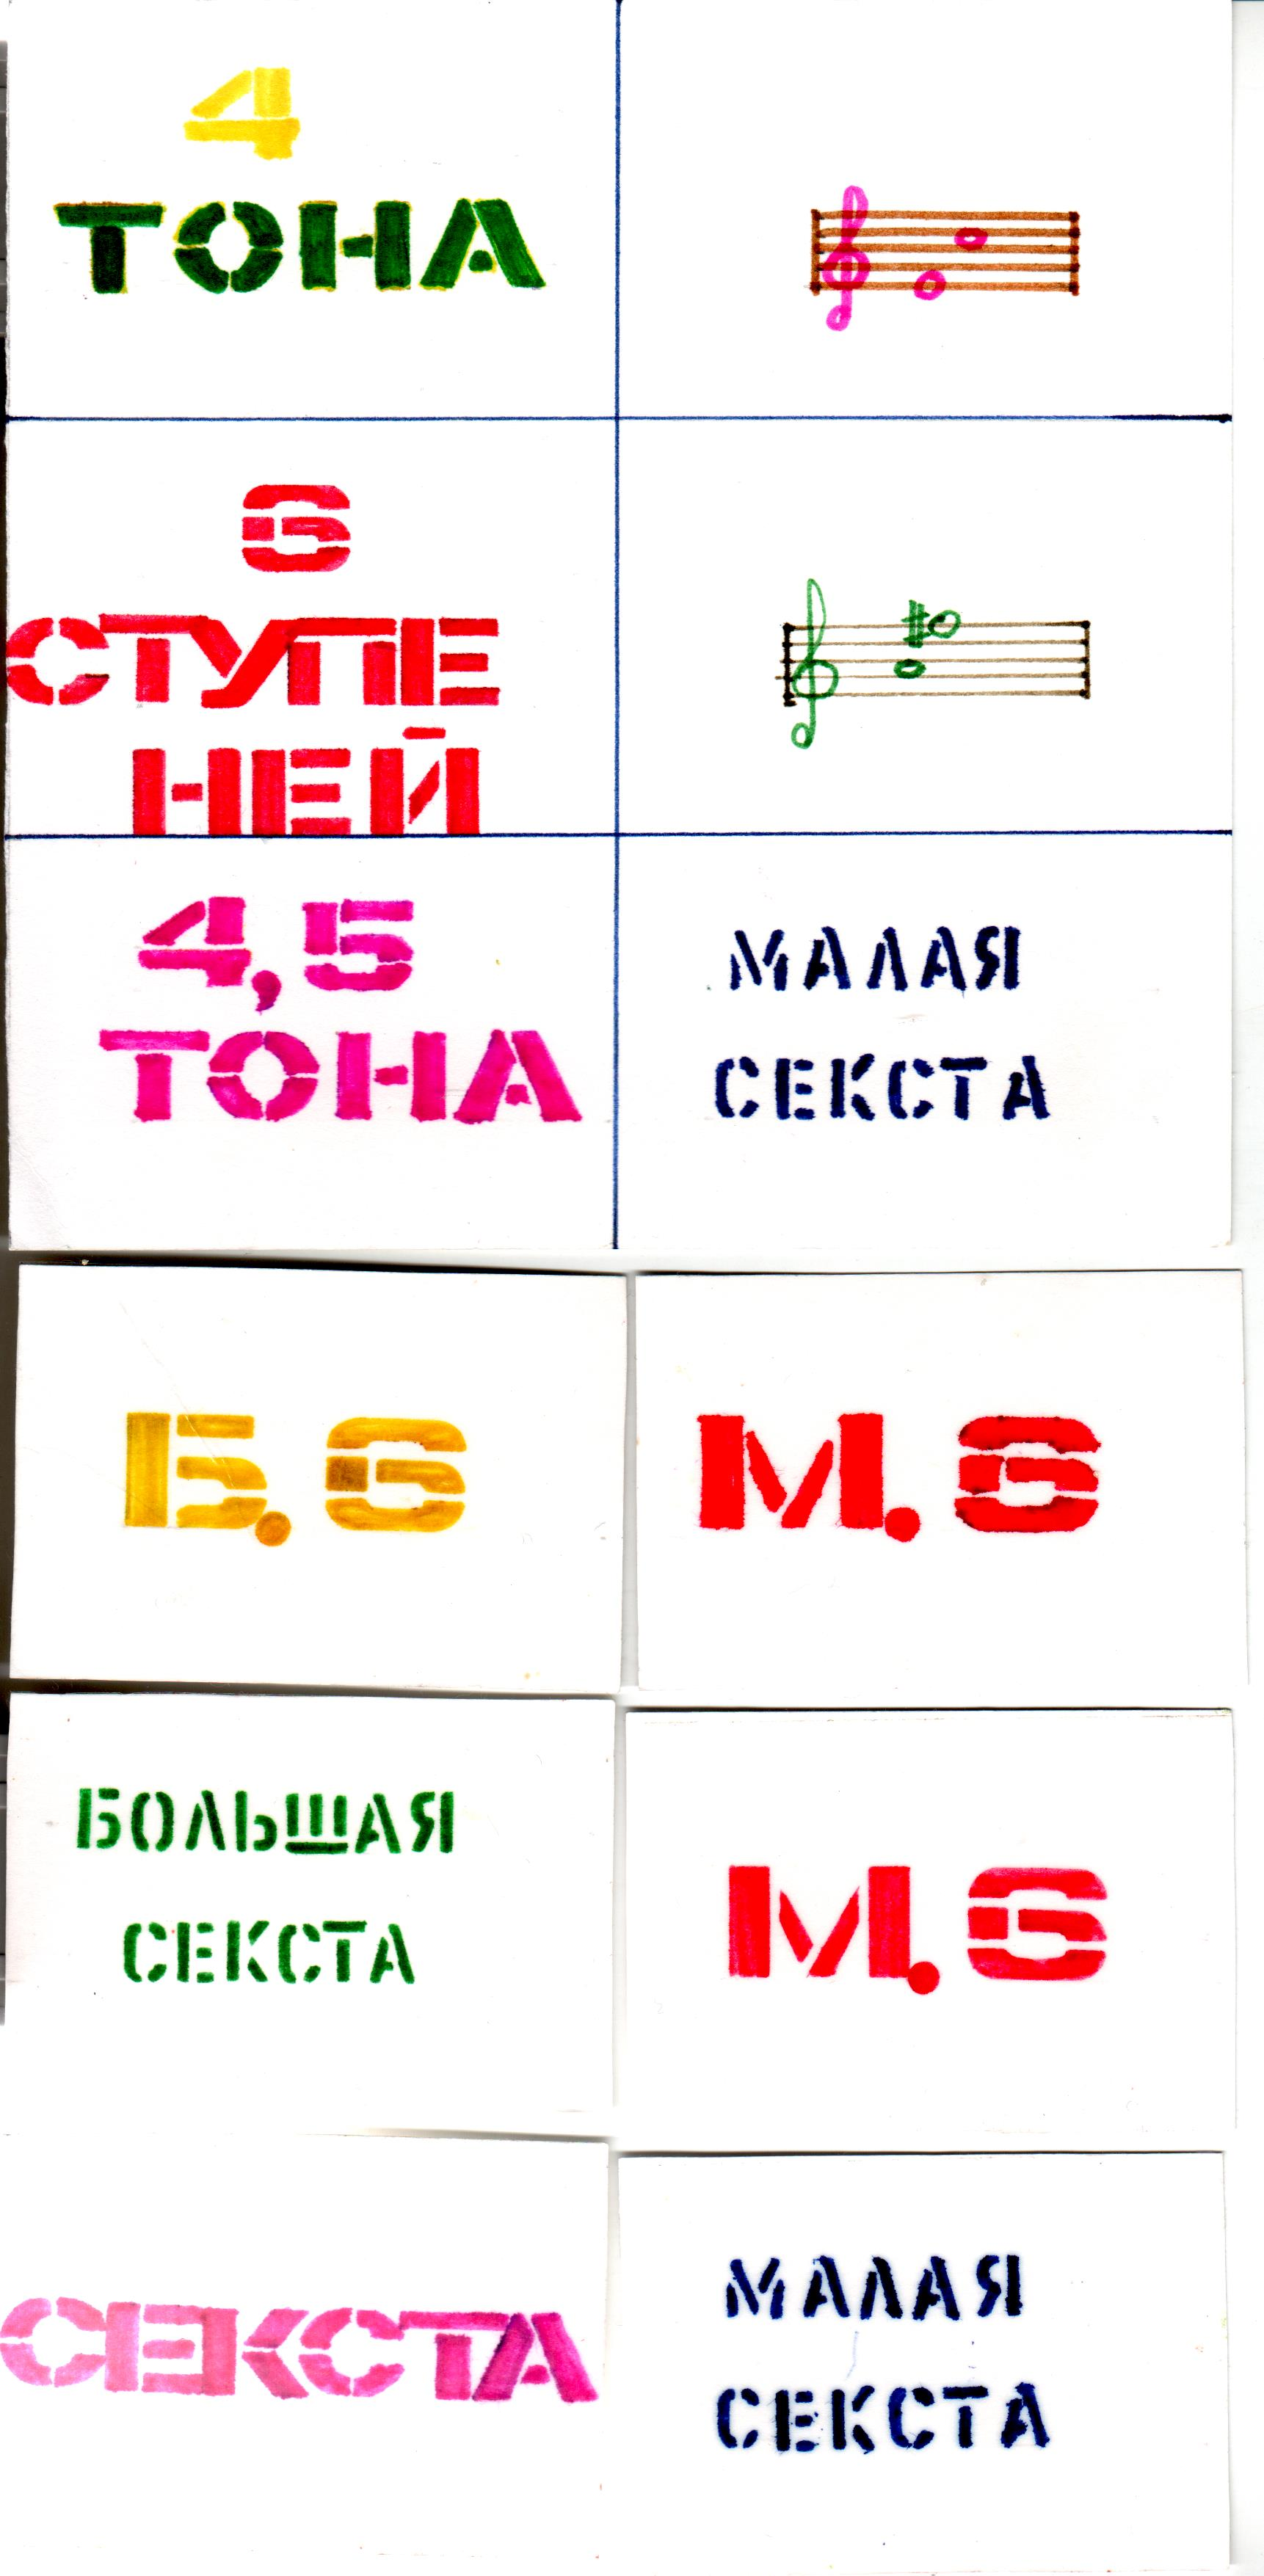 C:\Users\111\Pictures\2015-05-20 лото секста, септима\лото секста, септима 001.jpg